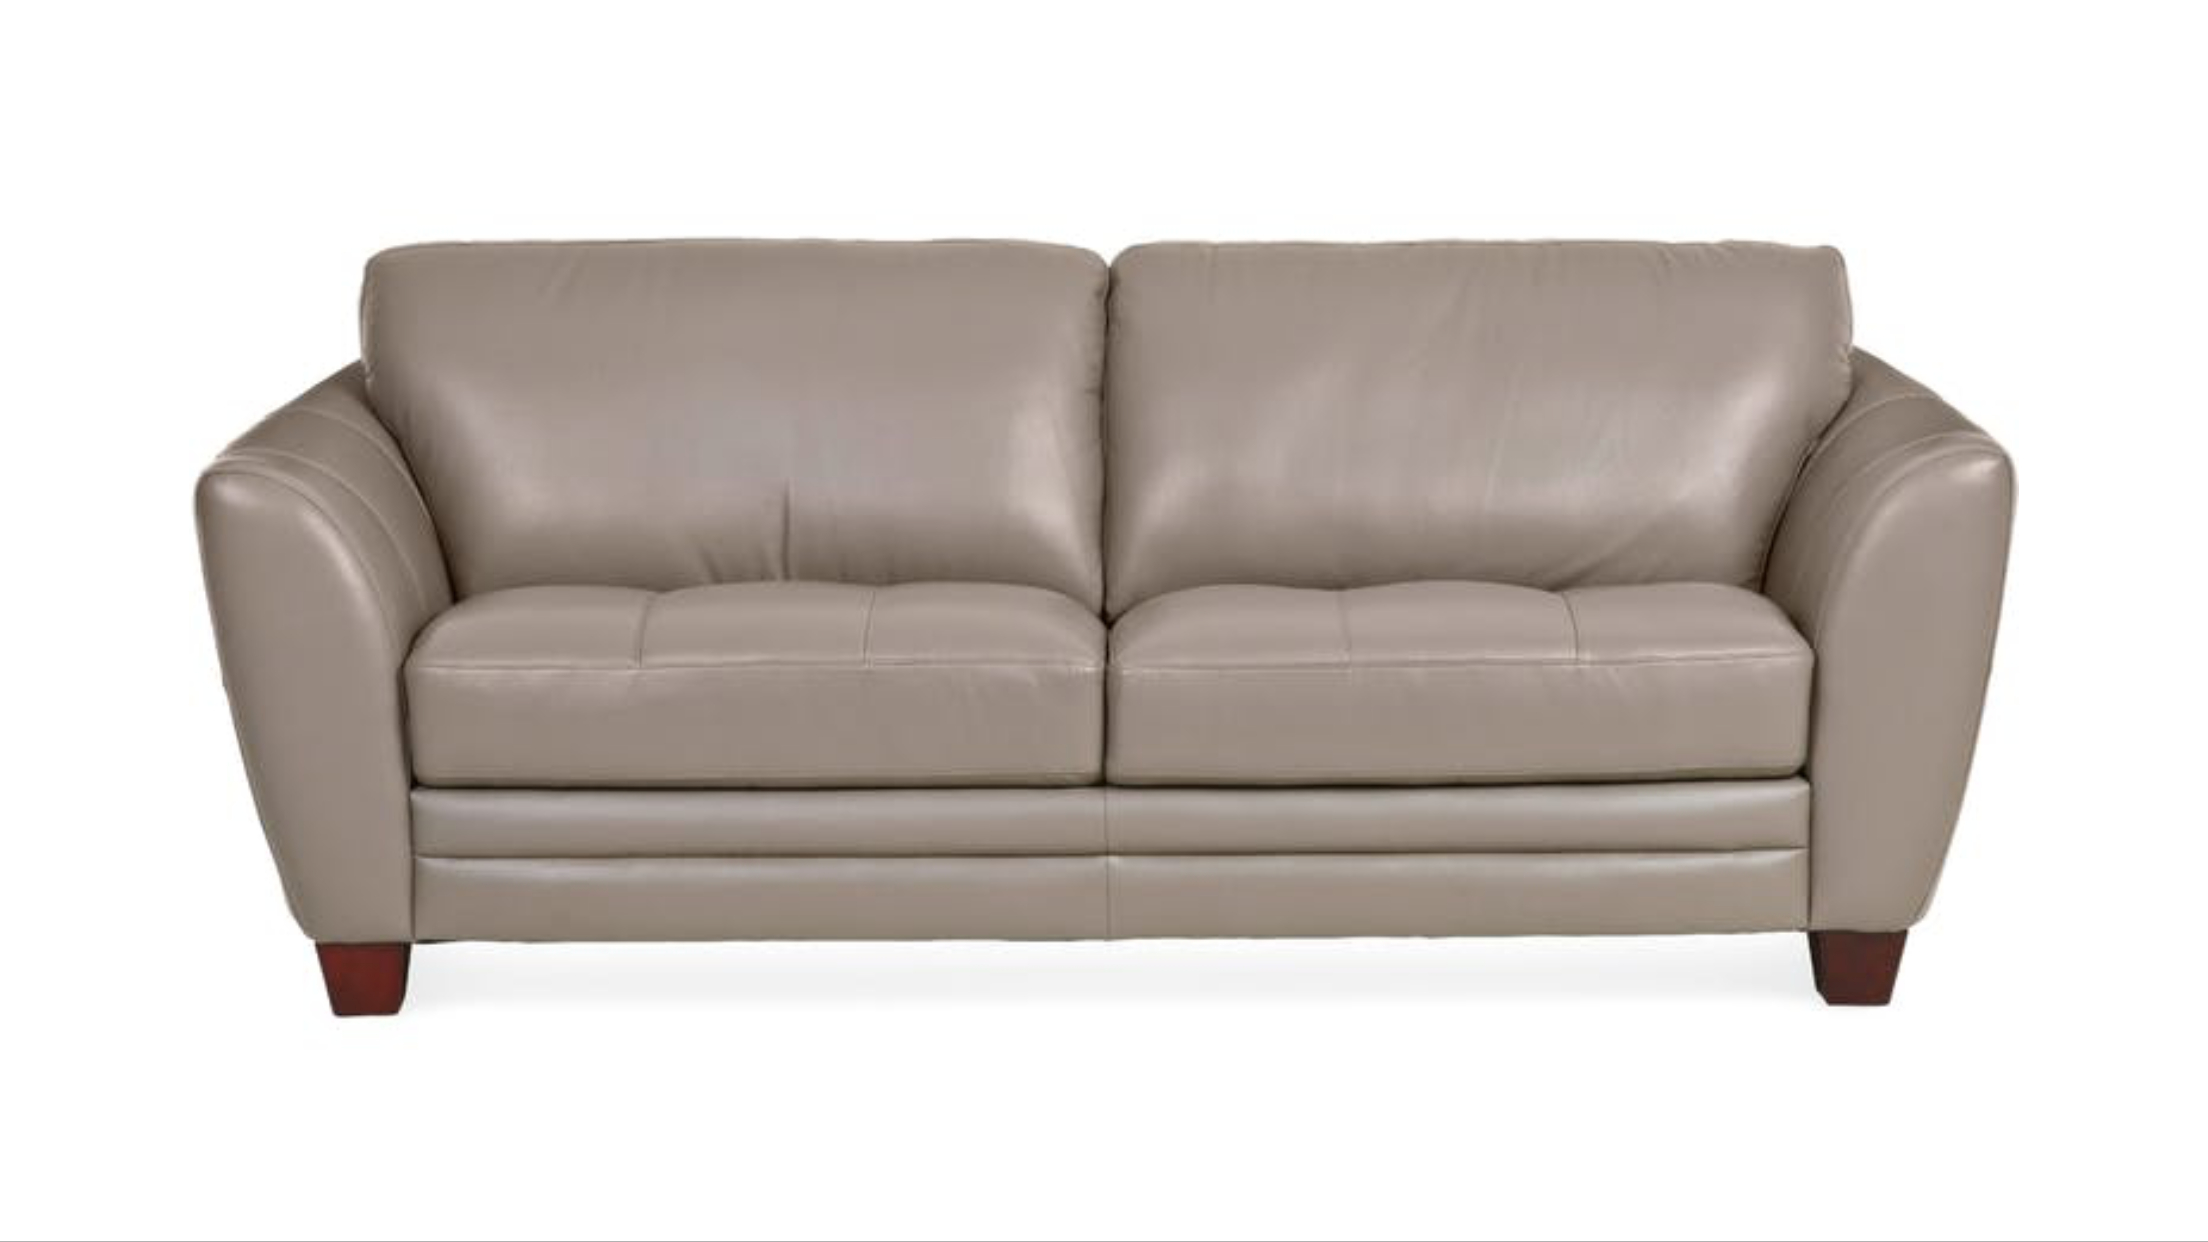 Grey Leather Bermuda Sofa | Sofa | Pinterest Within Cosette Leather Sofa Chairs (Image 19 of 25)